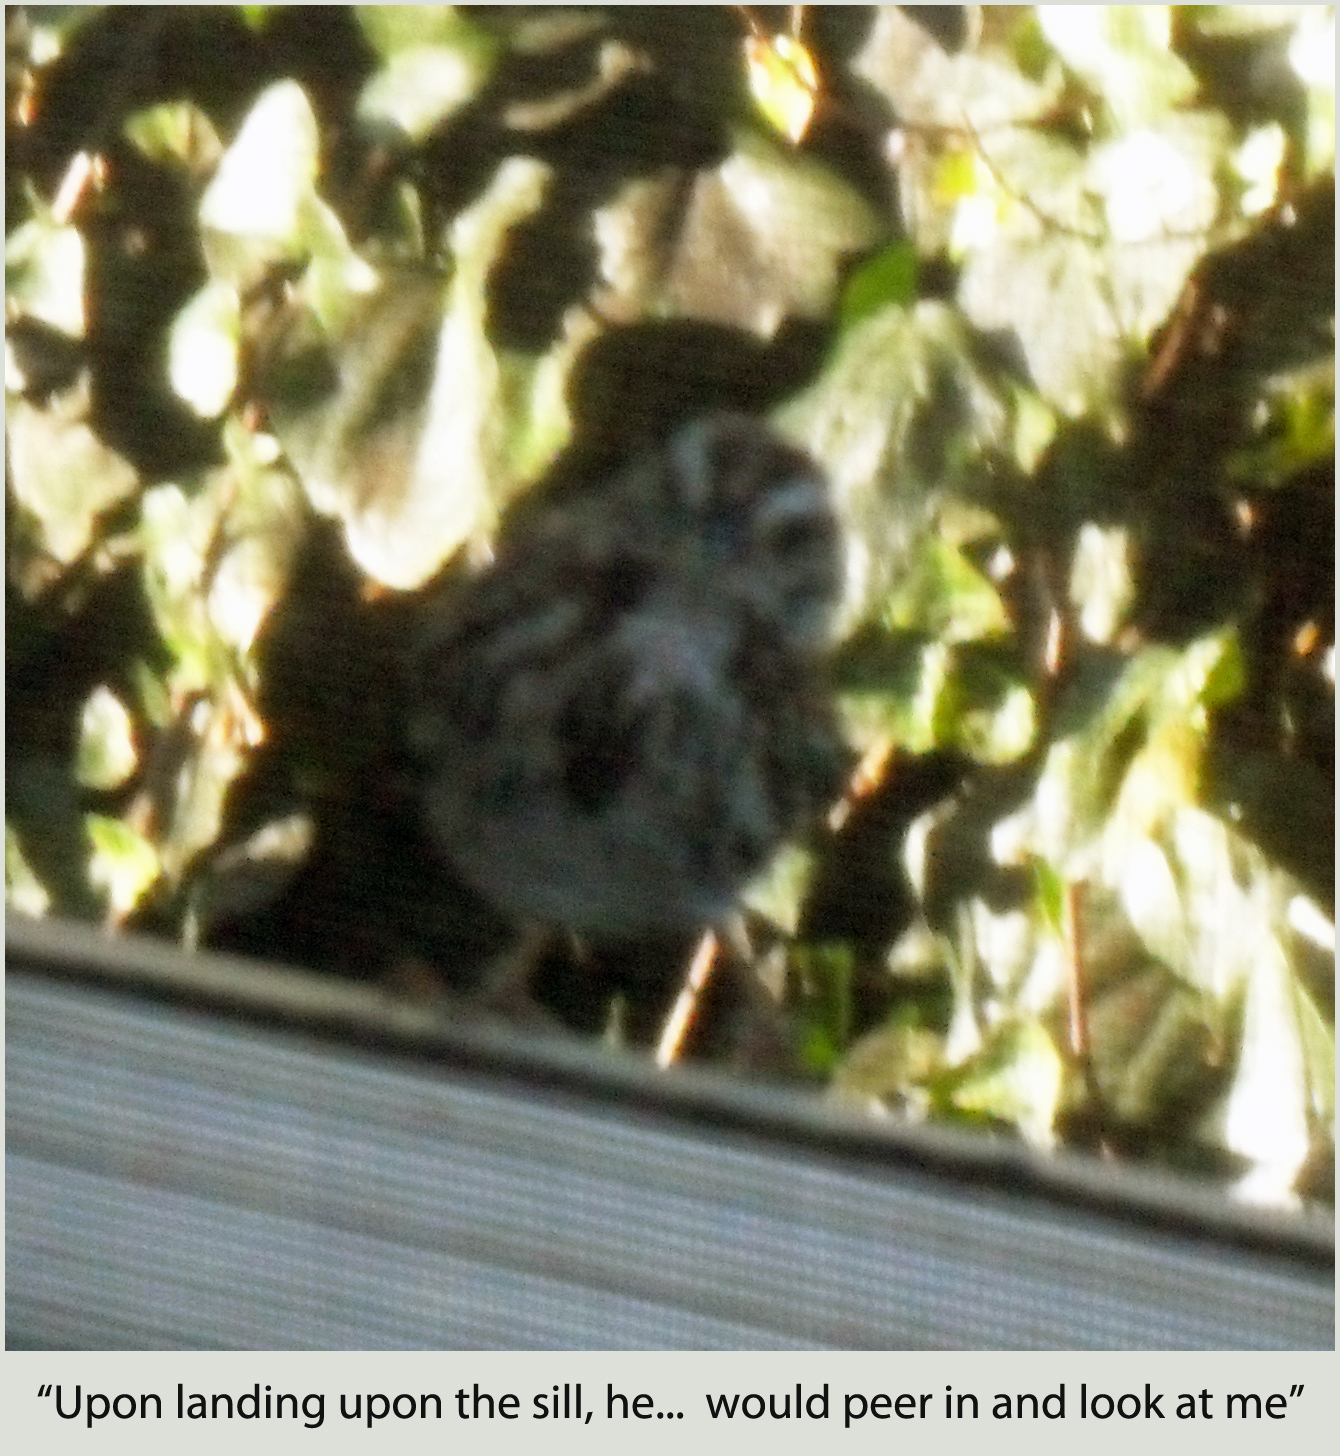 Upon landing upon the sill, the finch would peer in and look at me and peck on the window — completely unafraid.